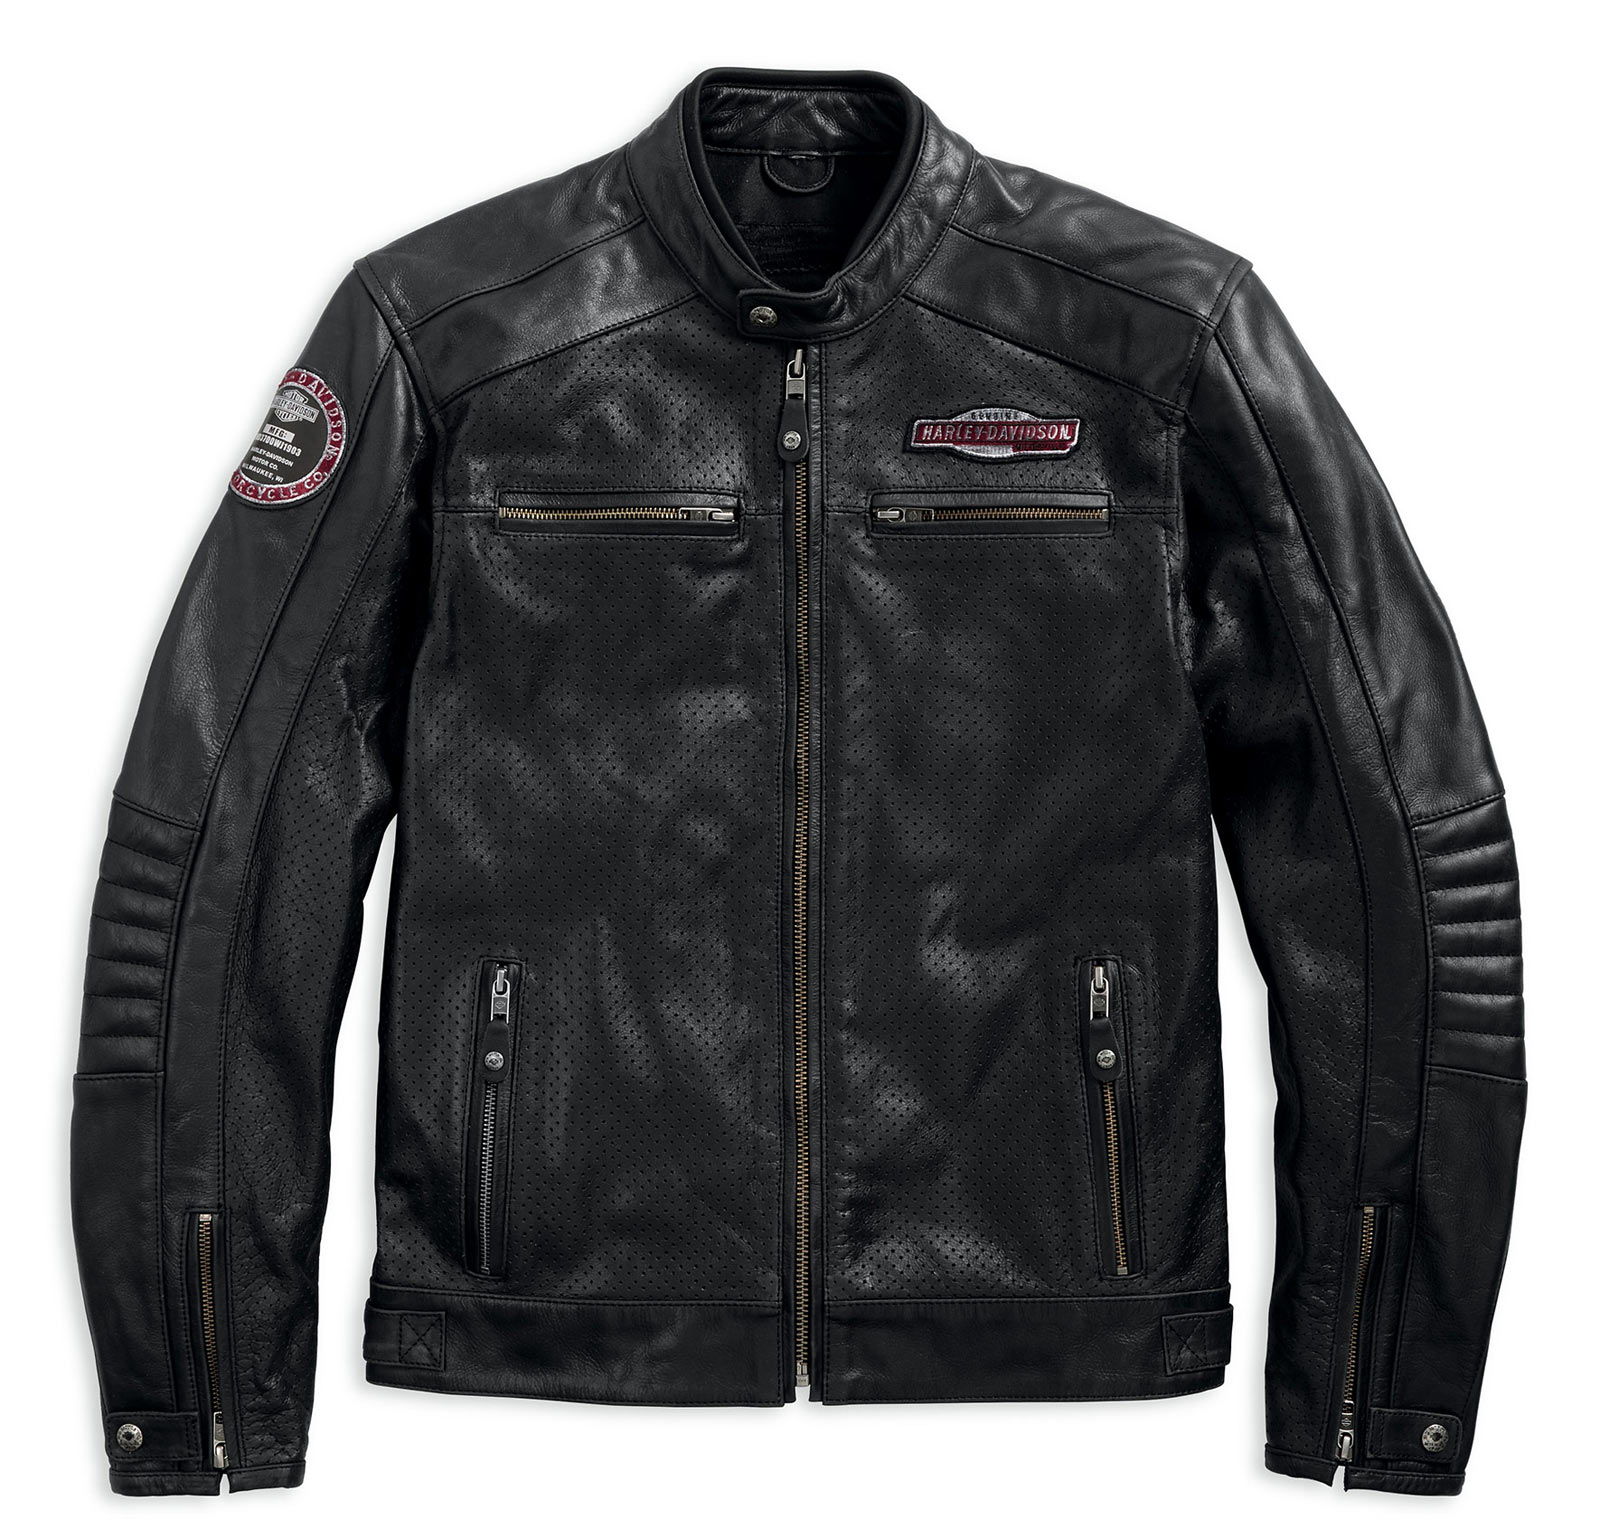 97183 17em harley davidson lederjacke cruiser perforated